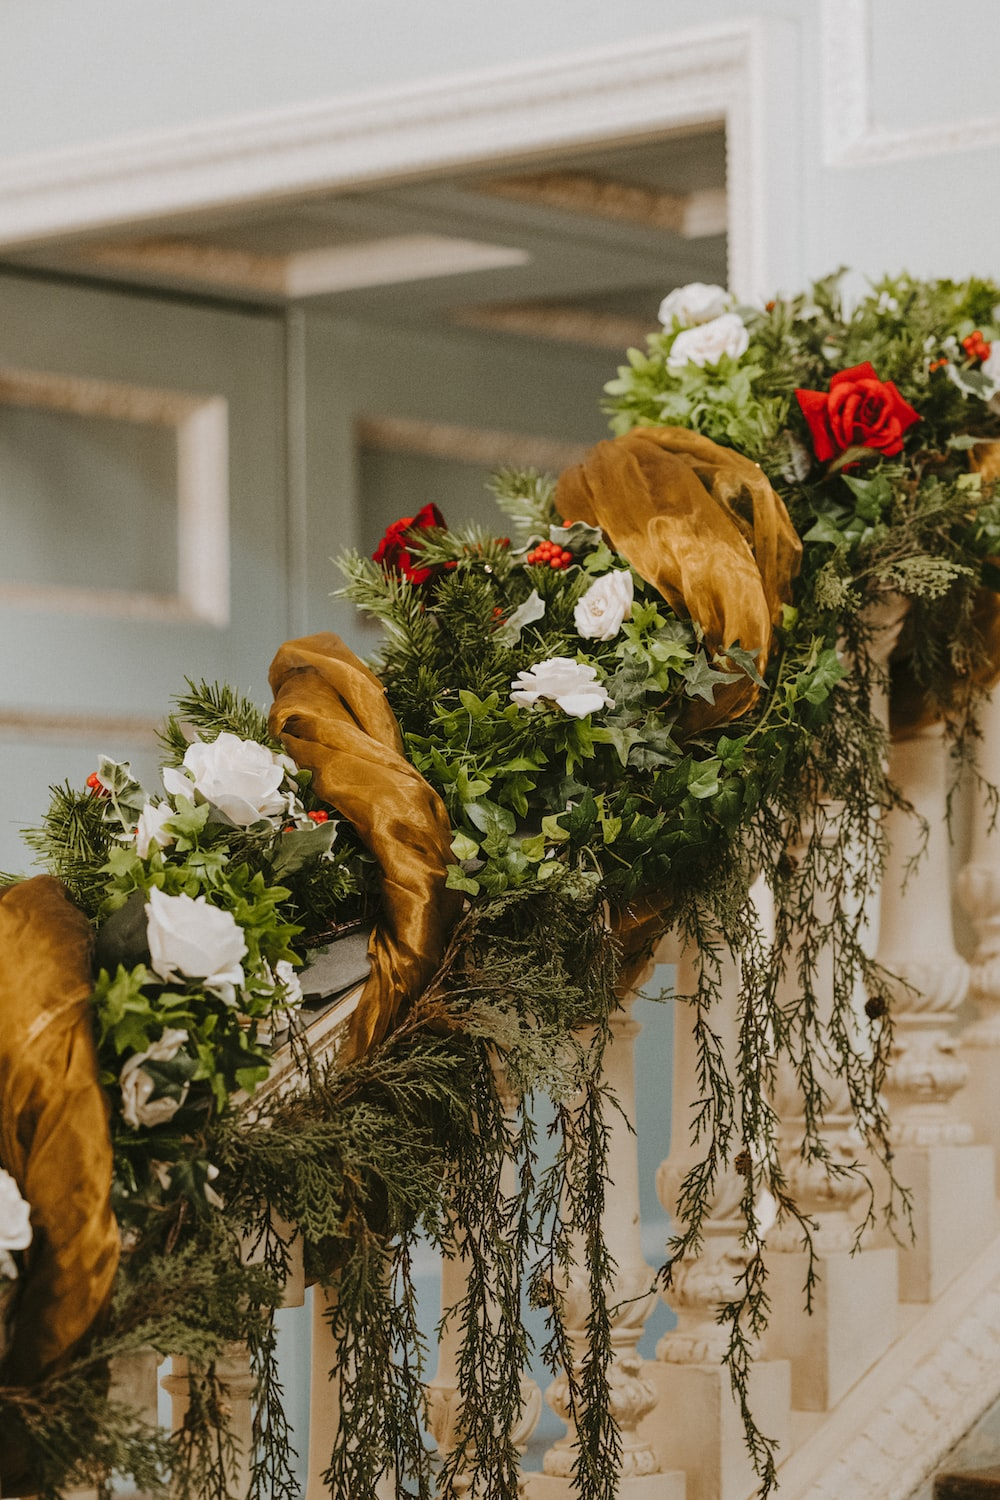 green wreath with red and white rose on handrail